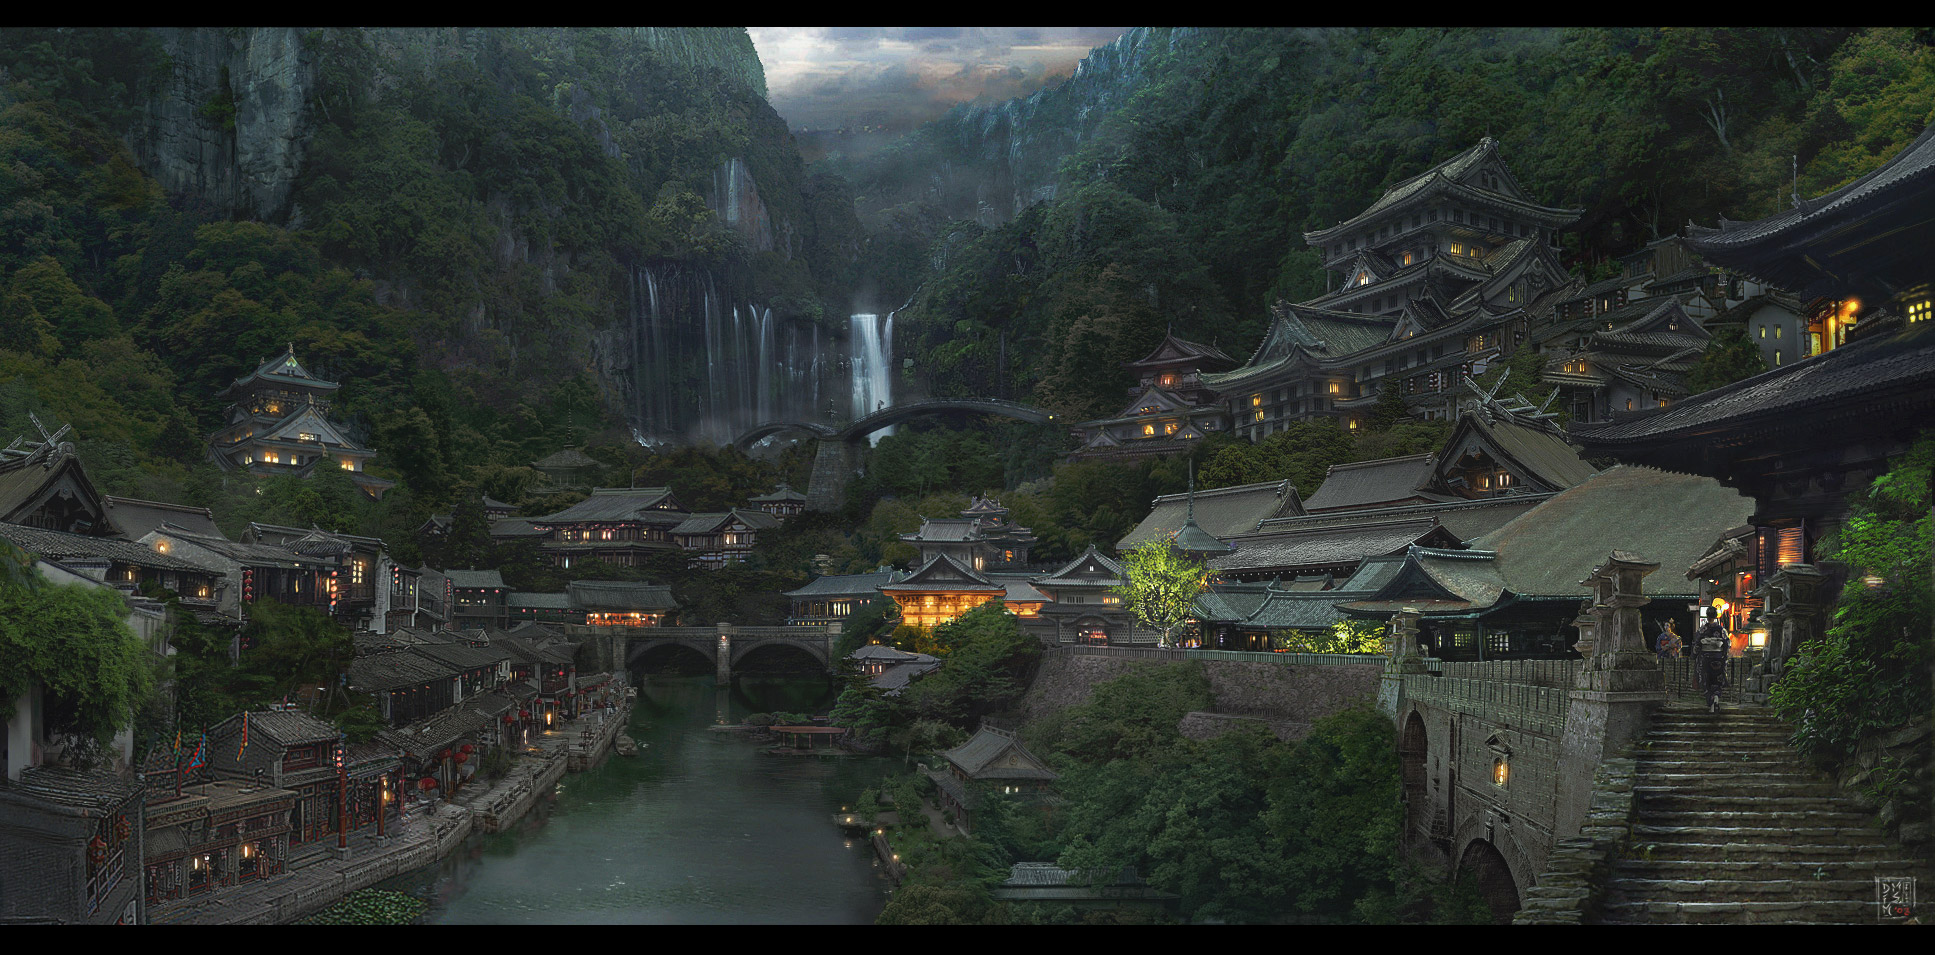 japanese_village_1 copyjpg 1935955 concept art mightier than the sword pinterest japanese and concept art